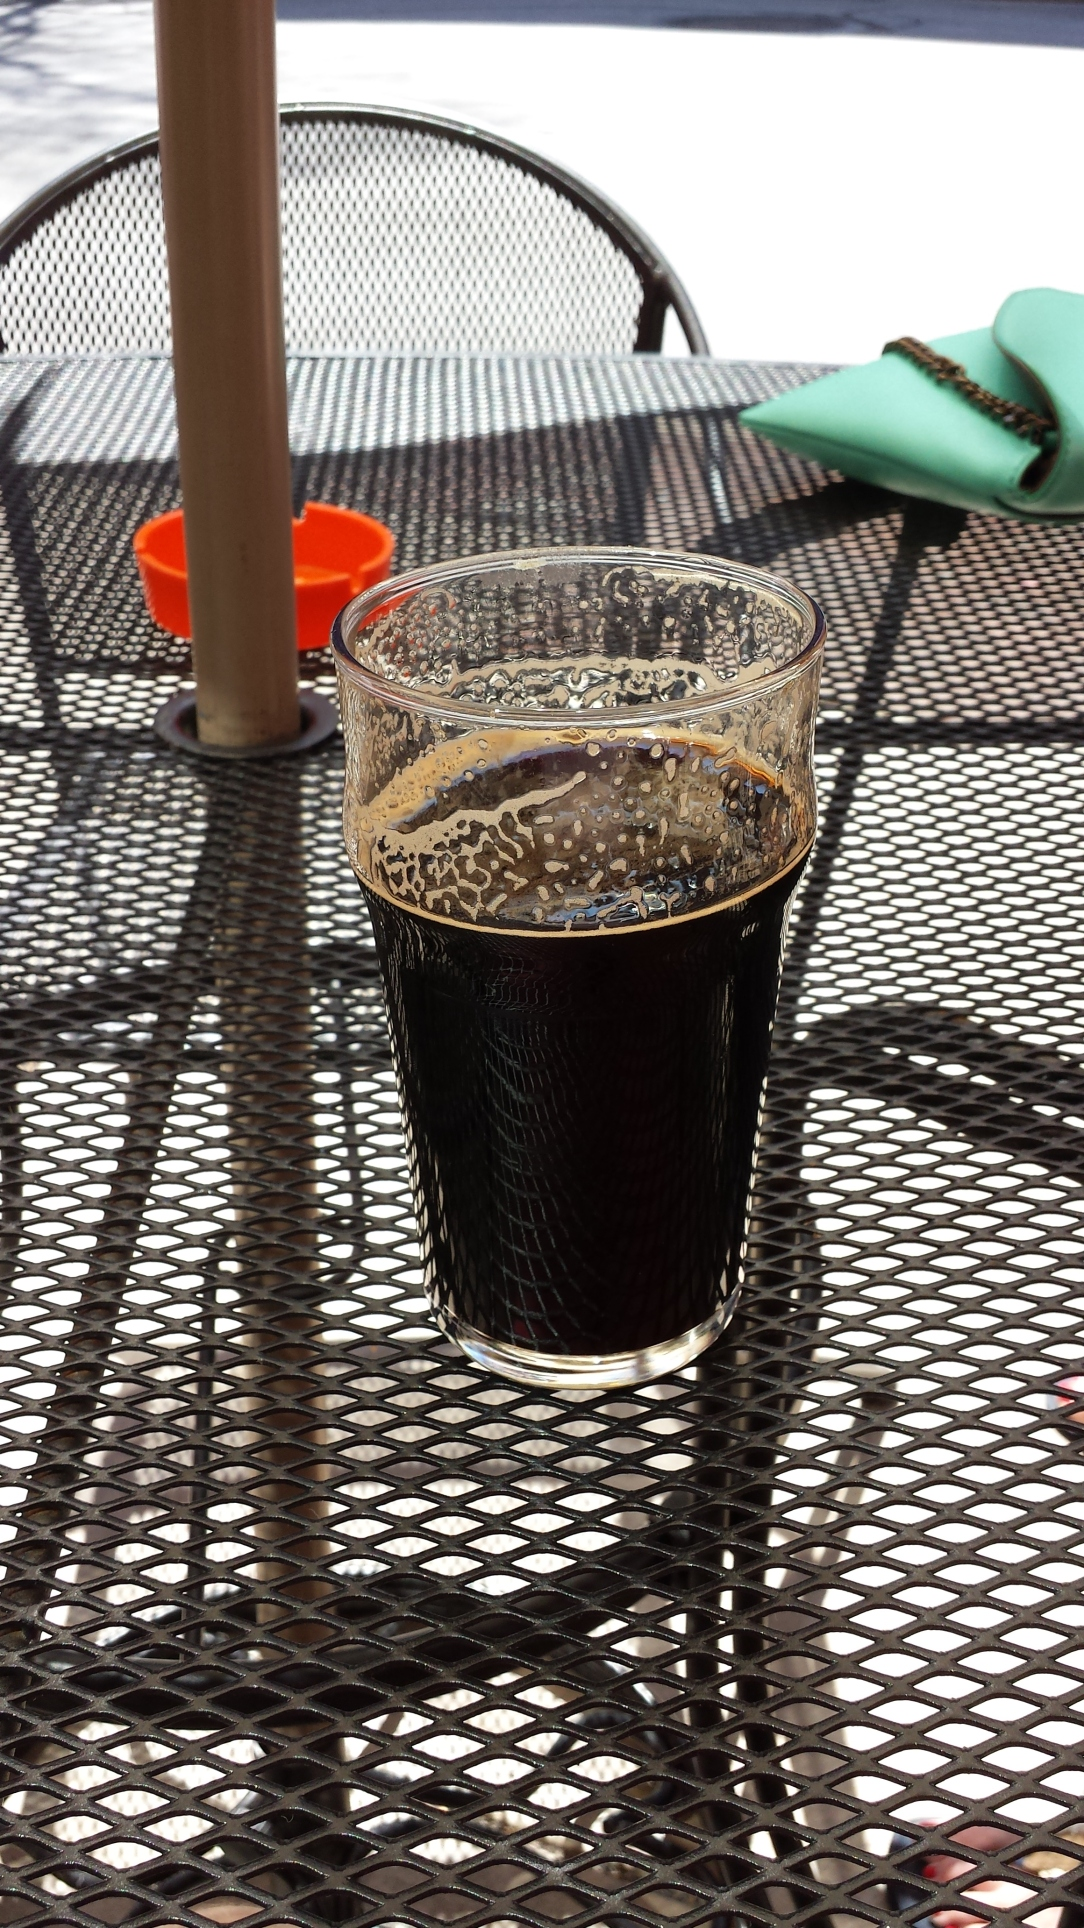 Starting the day with a nice Chocolate & PB stout courtesy of Springhouse.